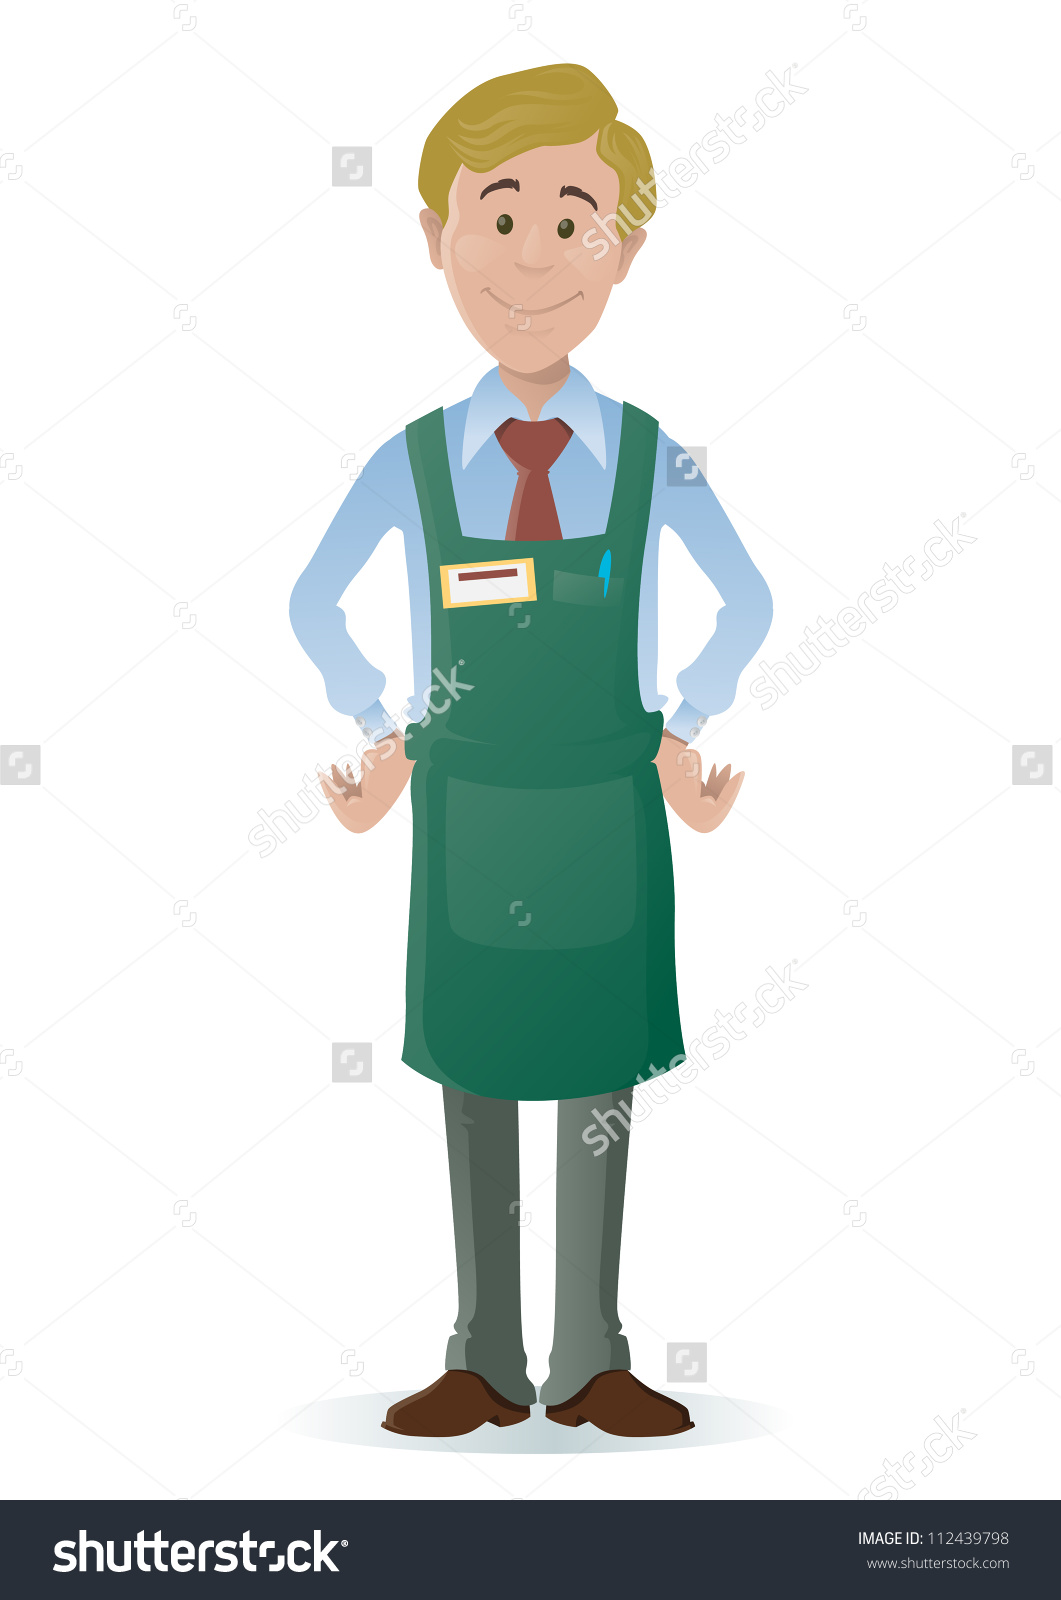 Store clerk clipart jpg free download Shopkeeper Stock Vector 112439798 - Shutterstock jpg free download